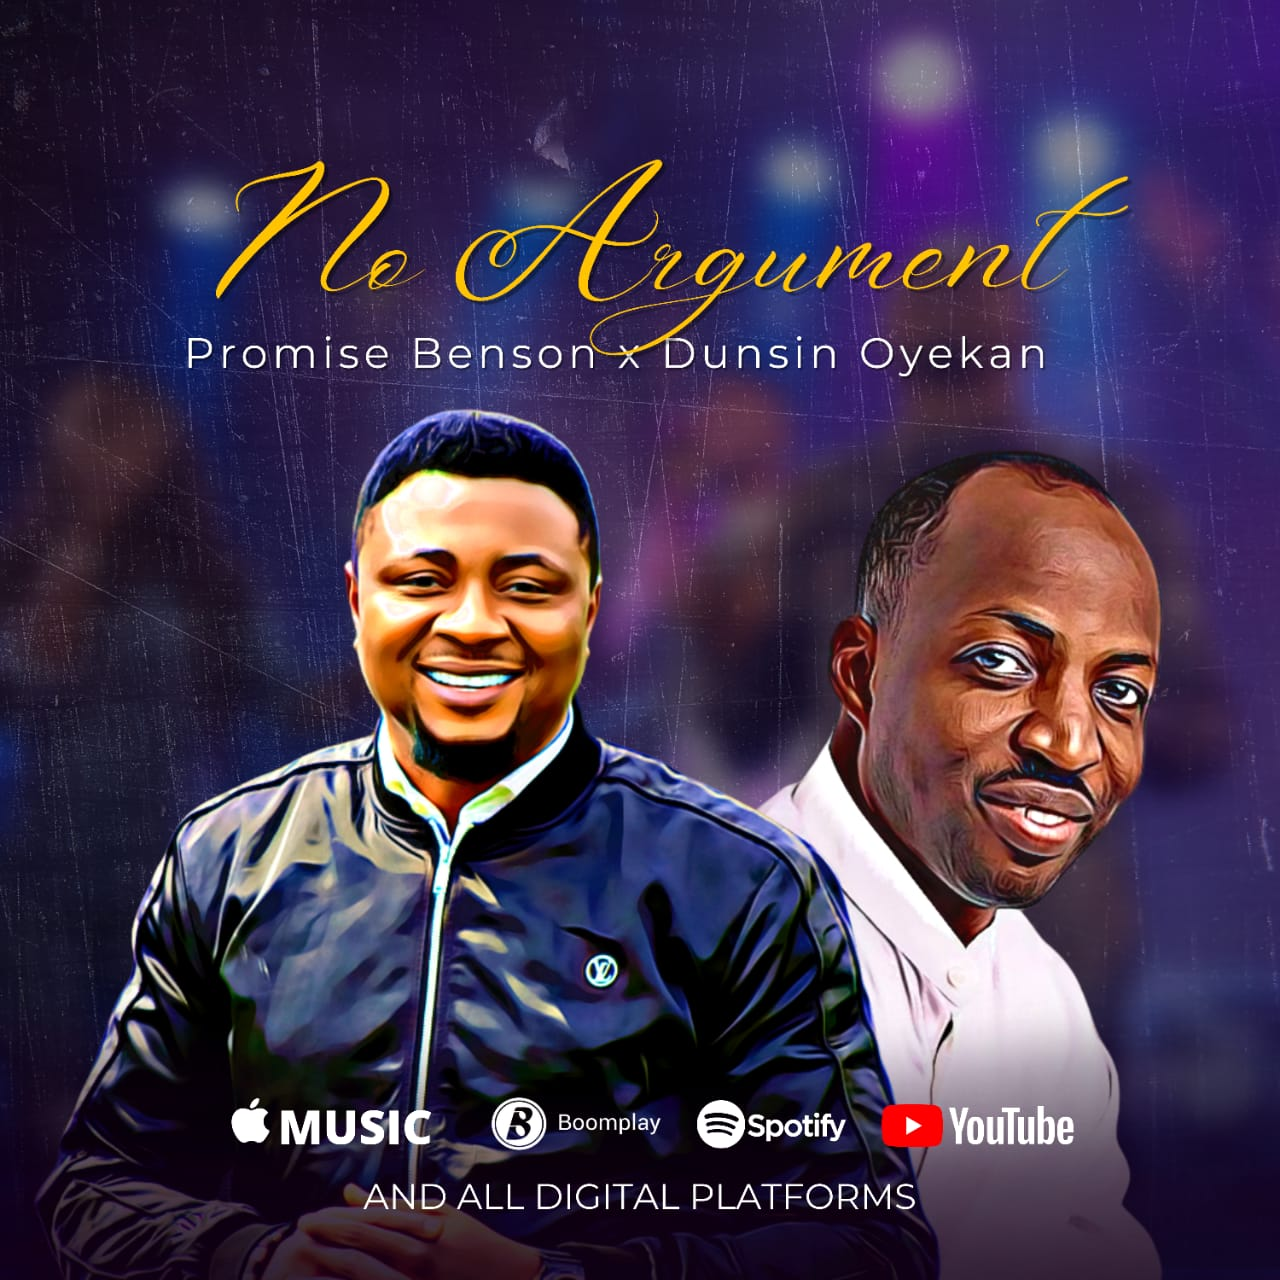 Download Mp3: Promise Benson - No Argument ft Dunsin Oyekan